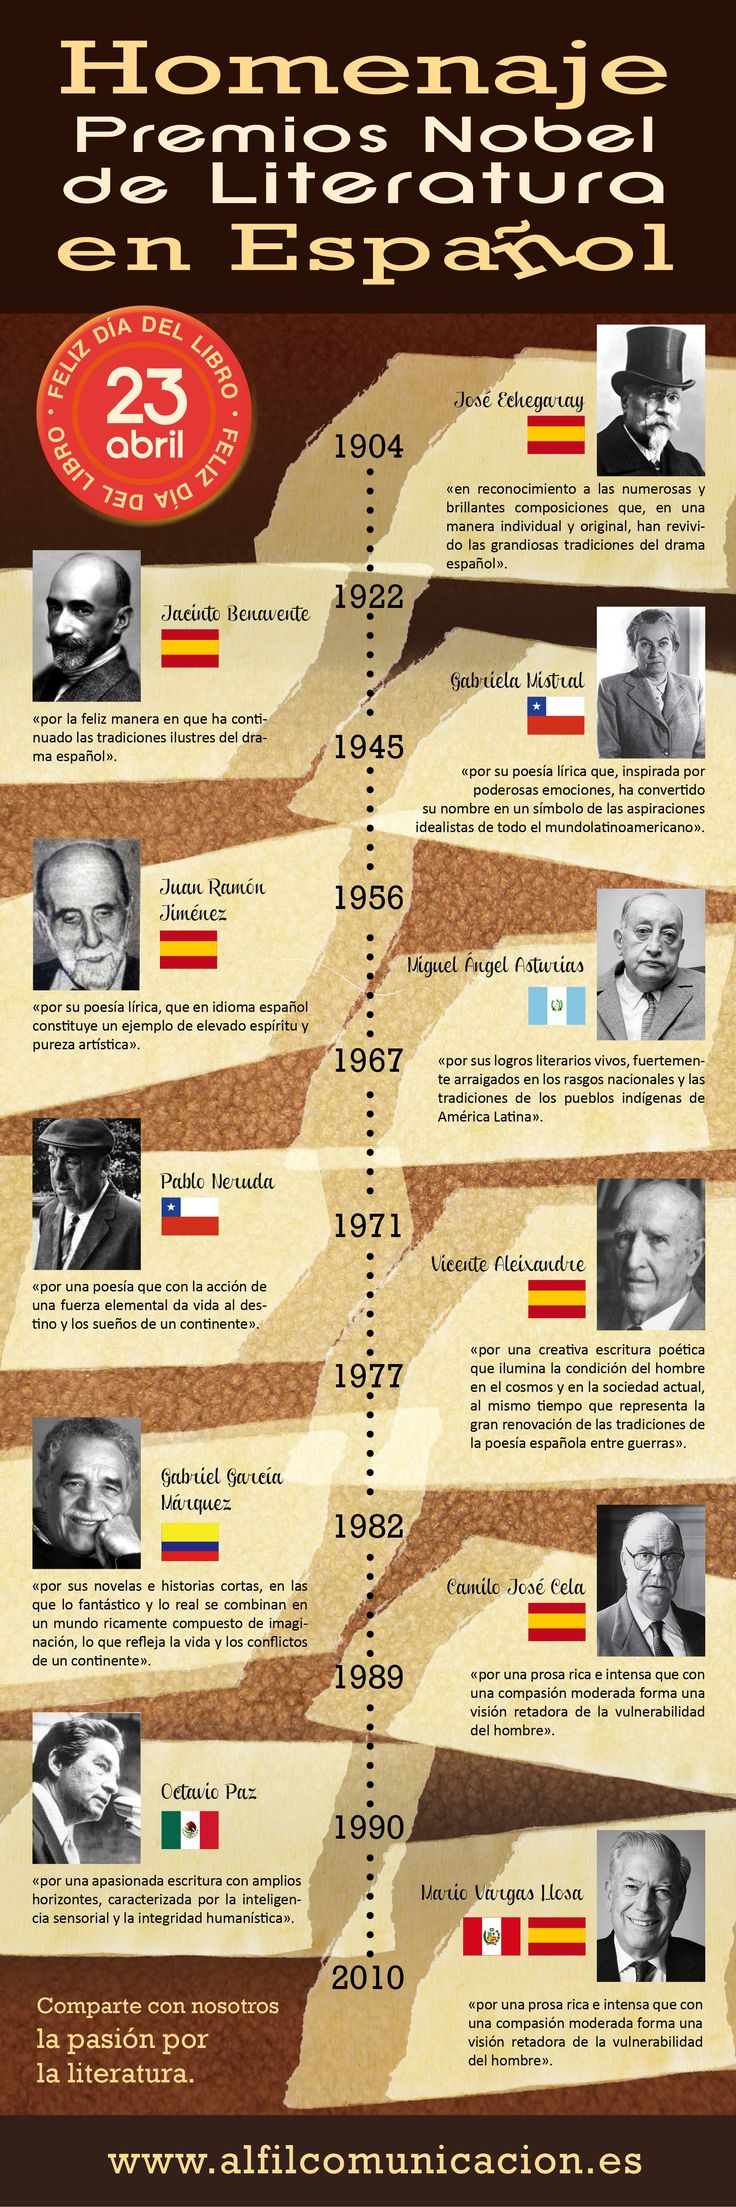 Infographic on #Spanish Literature #Nobel Prizes.